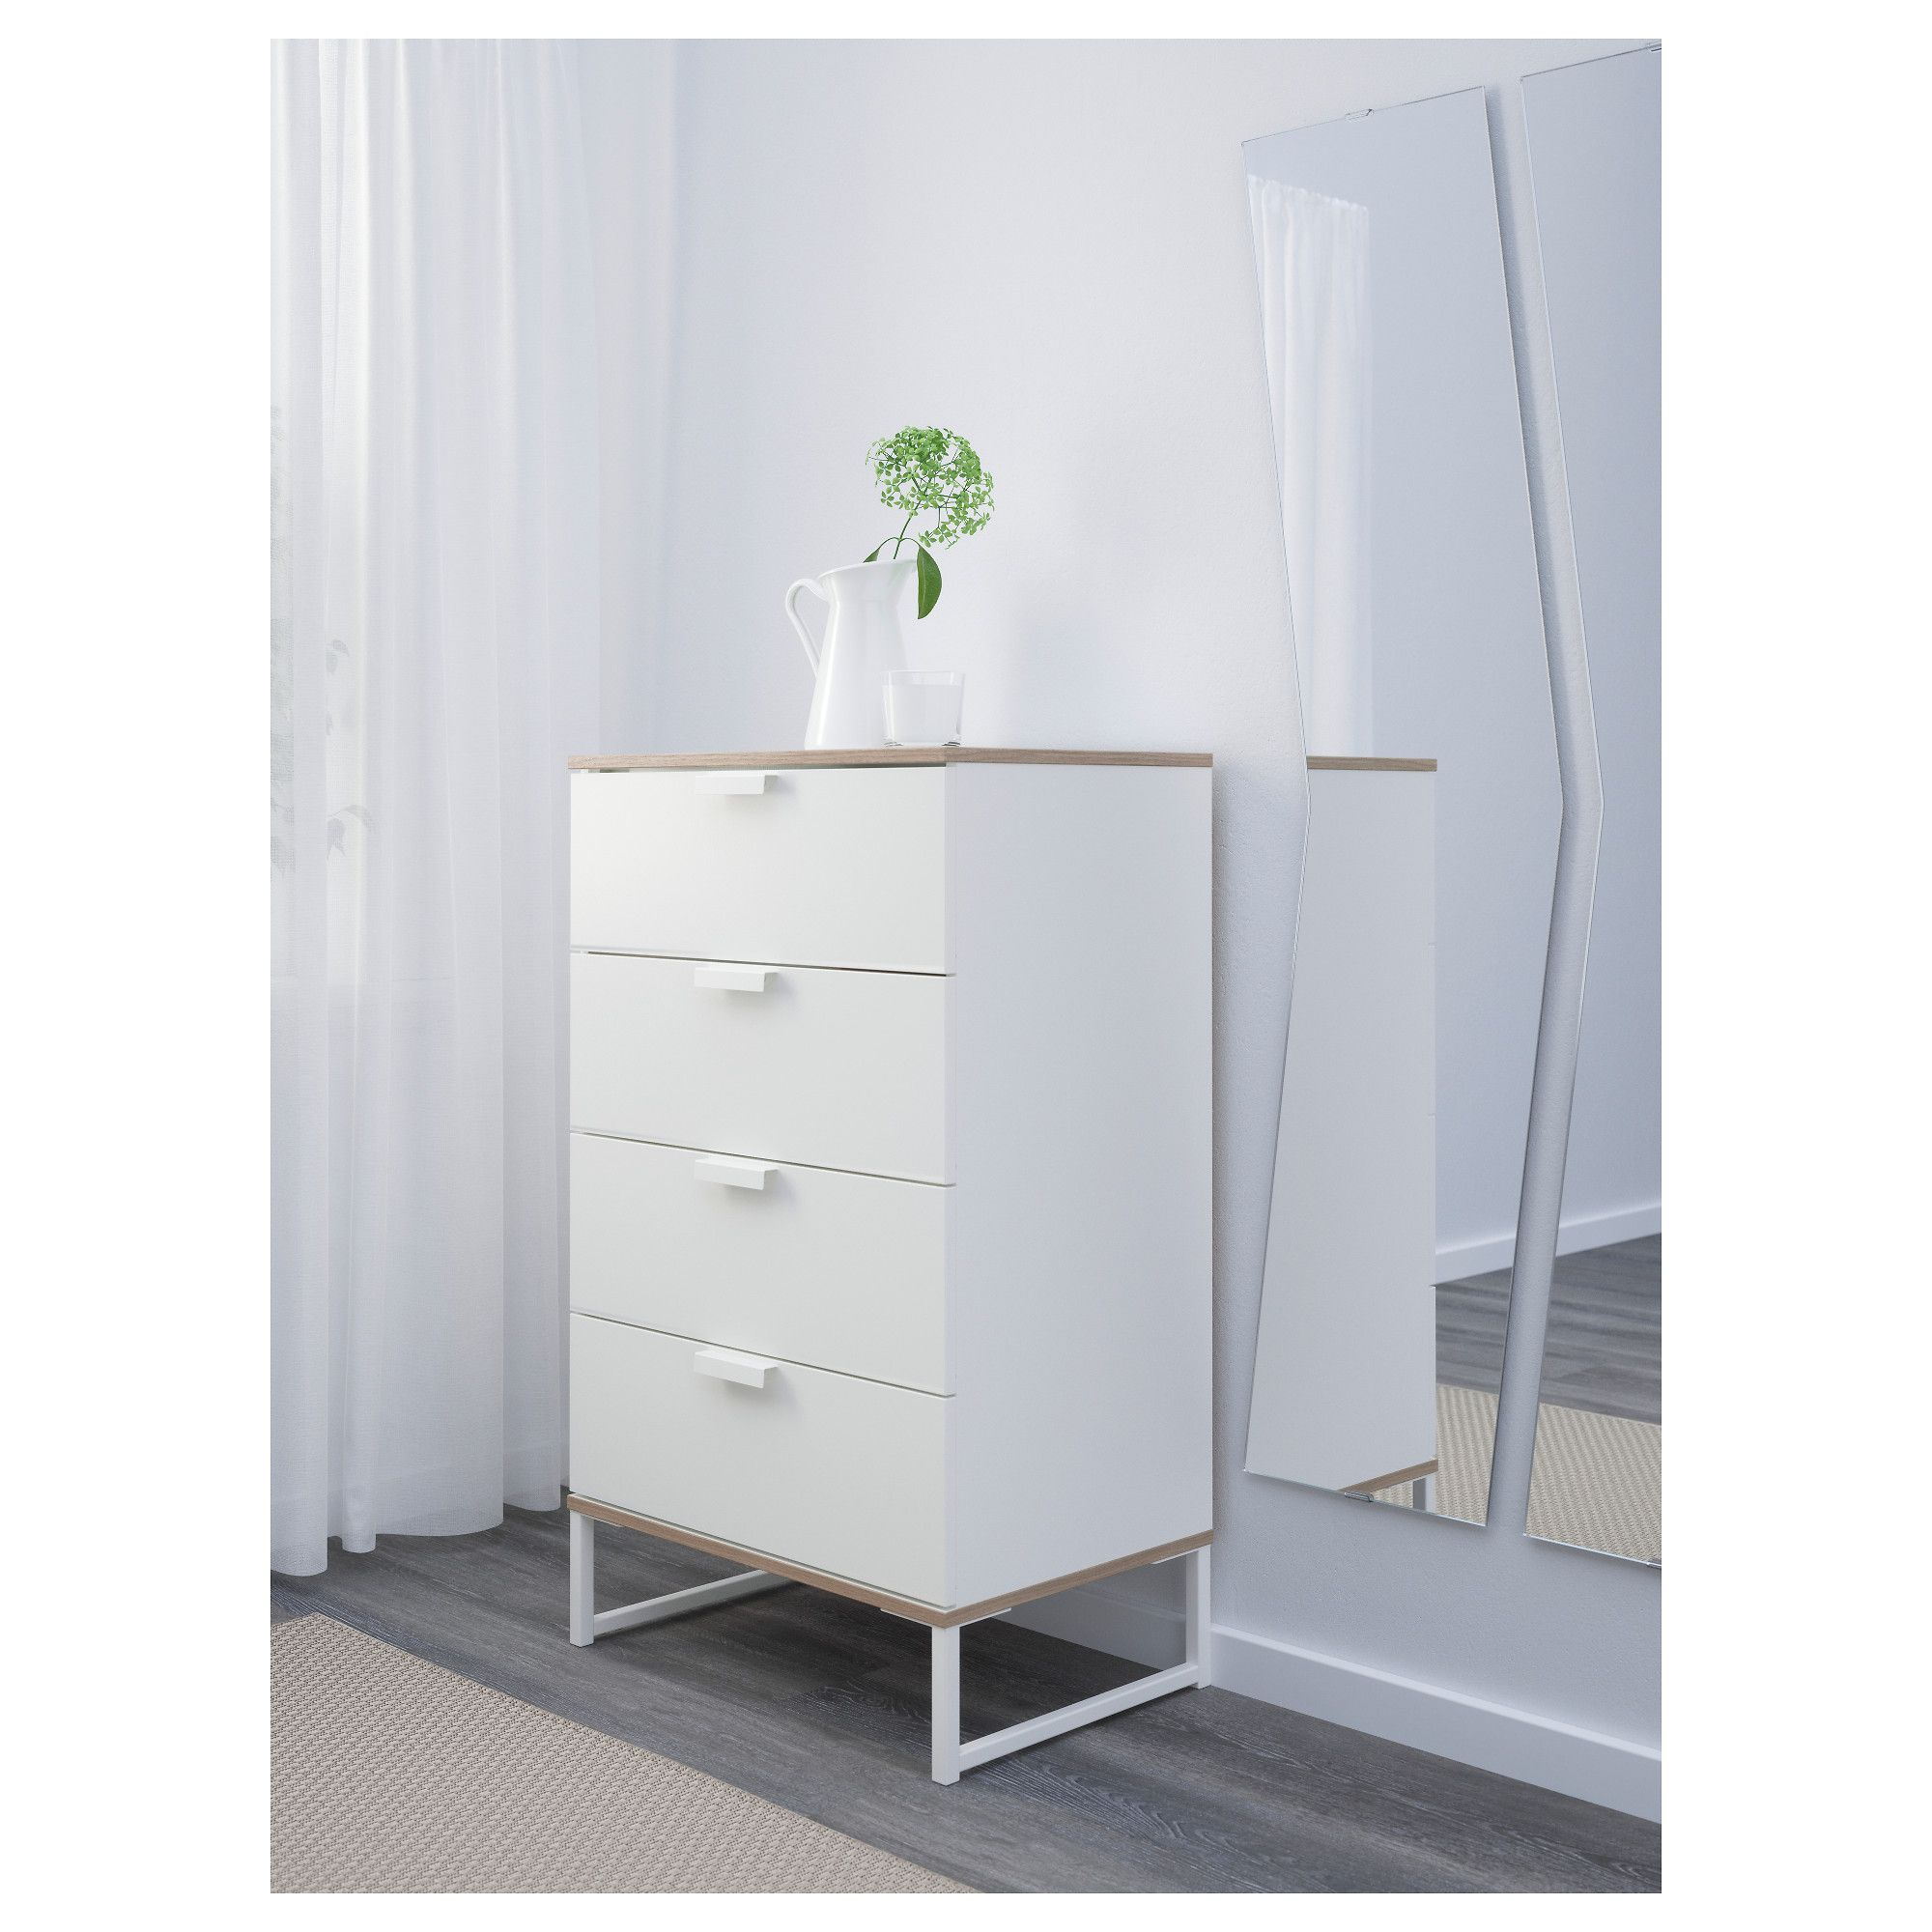 Ikea Trysil Chest Of 4 Drawers Smooth Running With Pull Out Stop